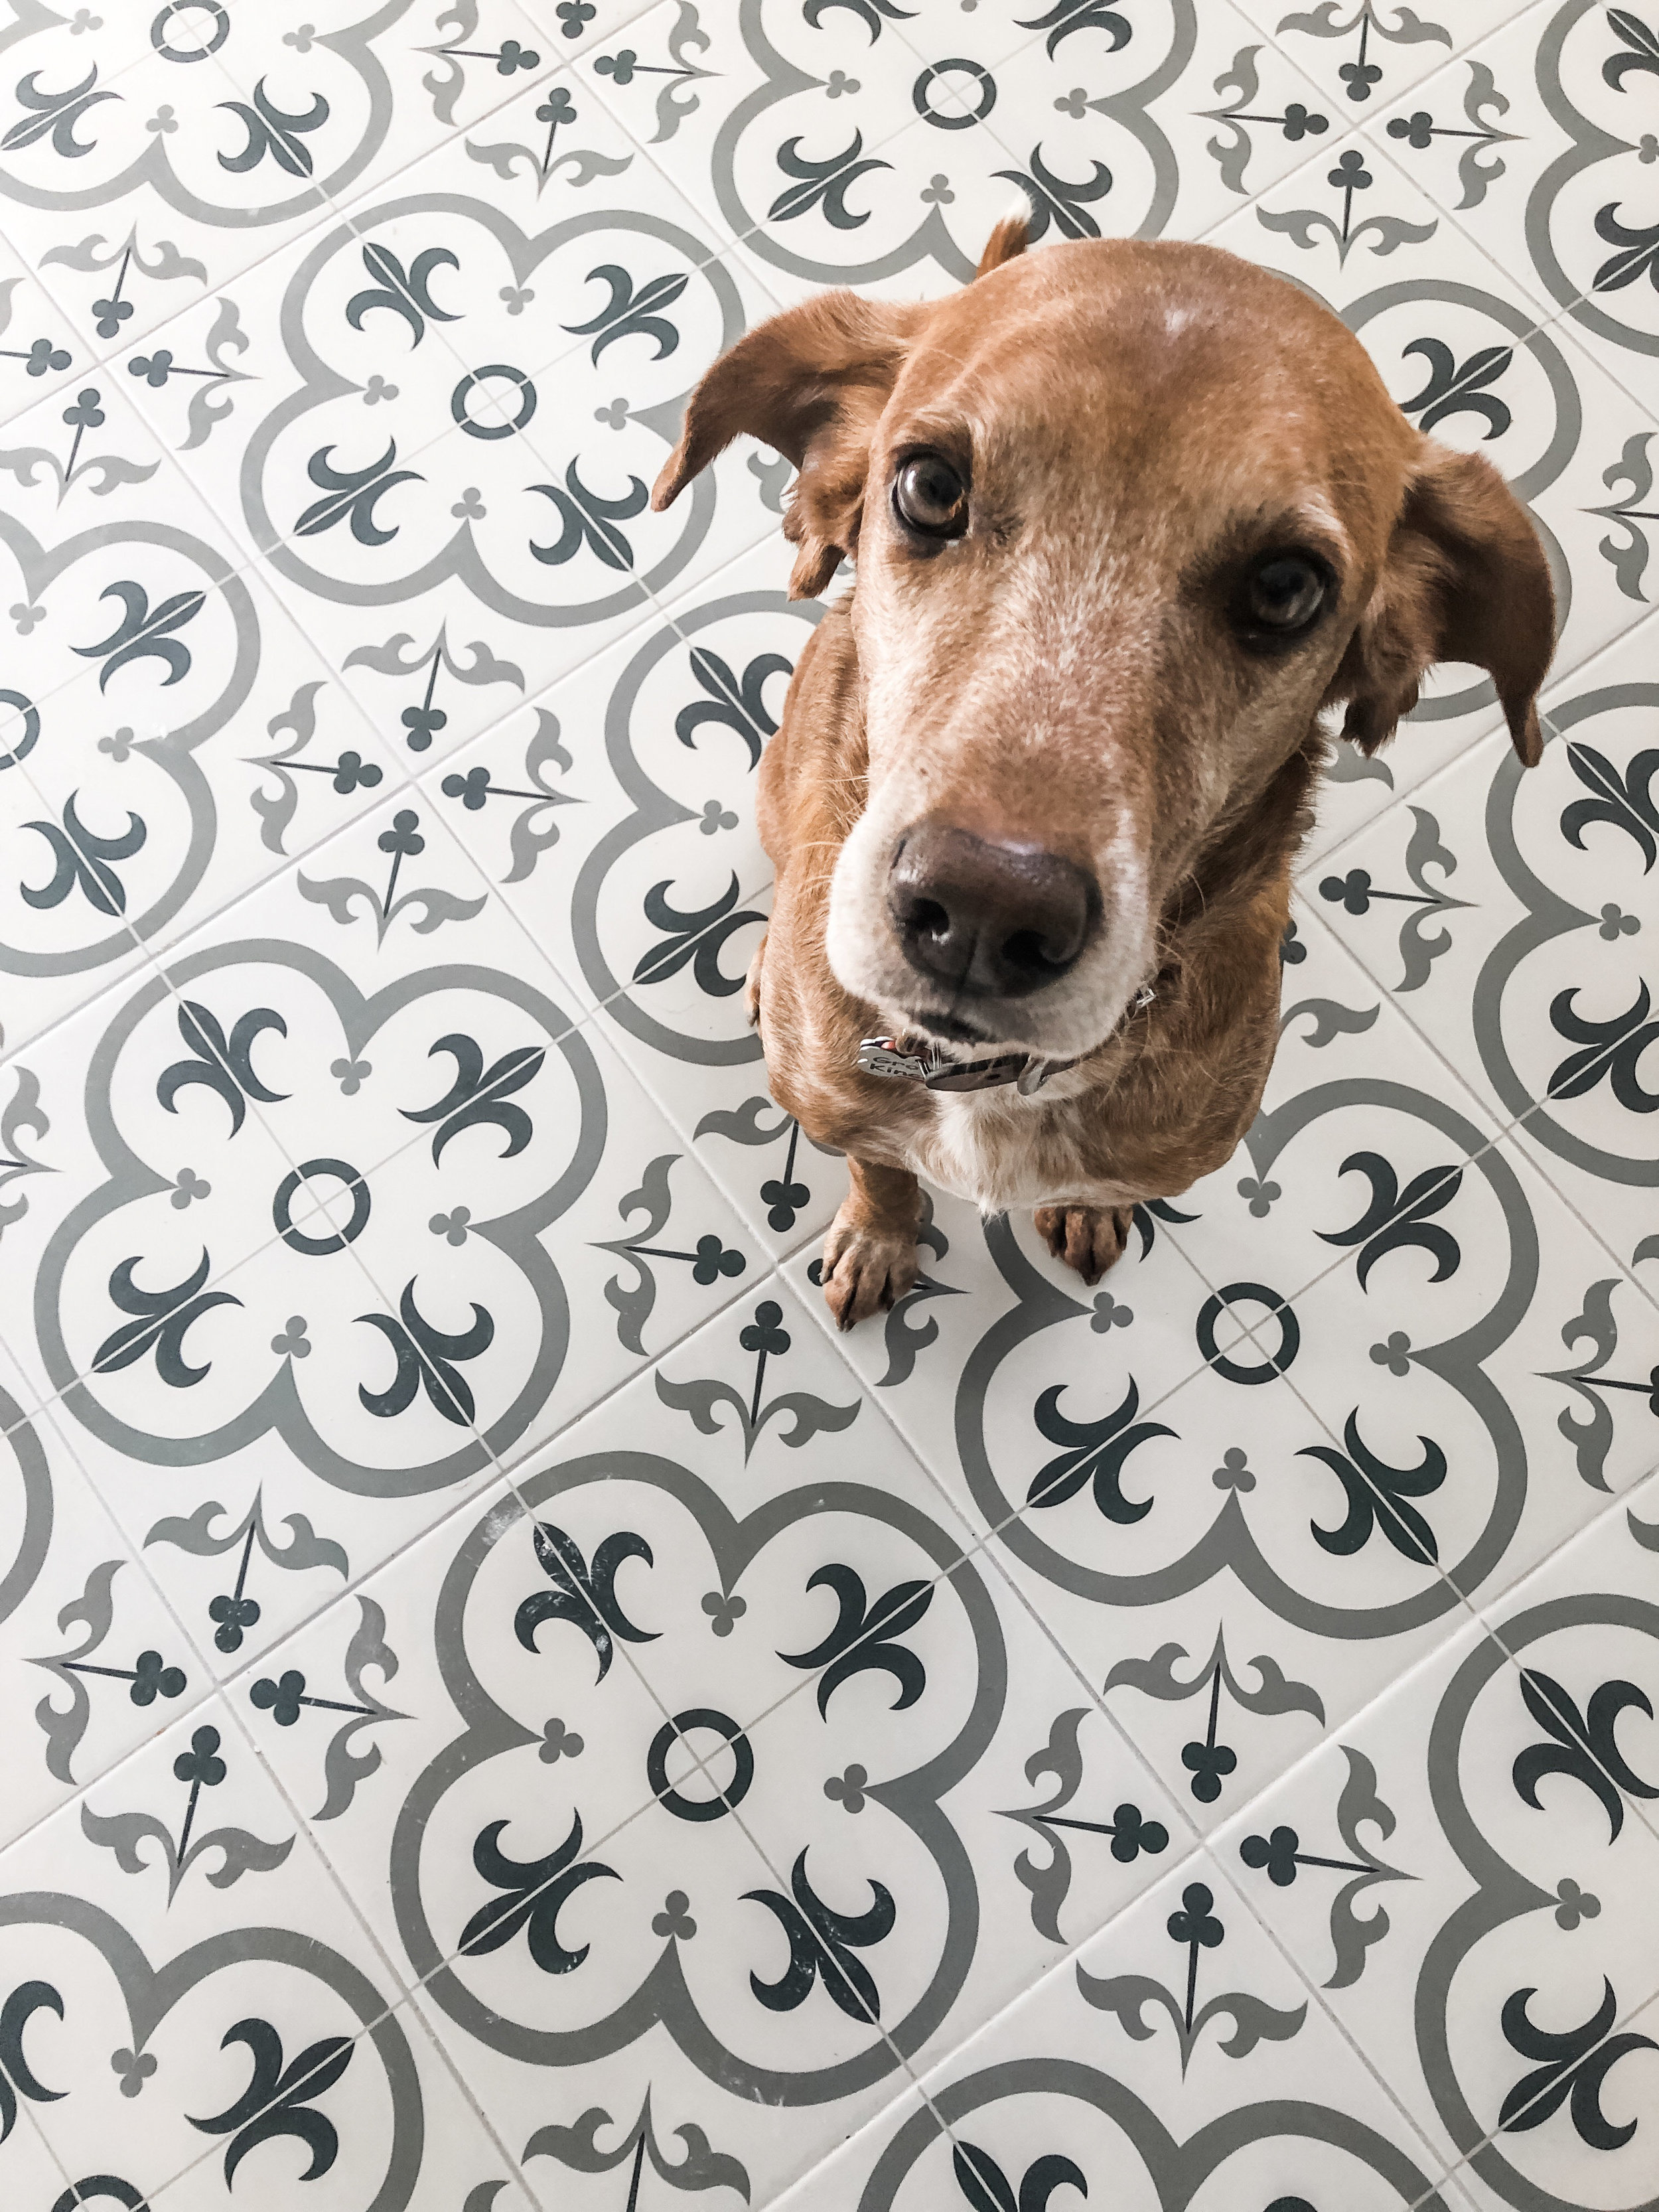 Grover and our new kitchen floors. This was taken the same day everything was finished. G is a pup who doesn't like change, so he sure is expressive in how he feels.